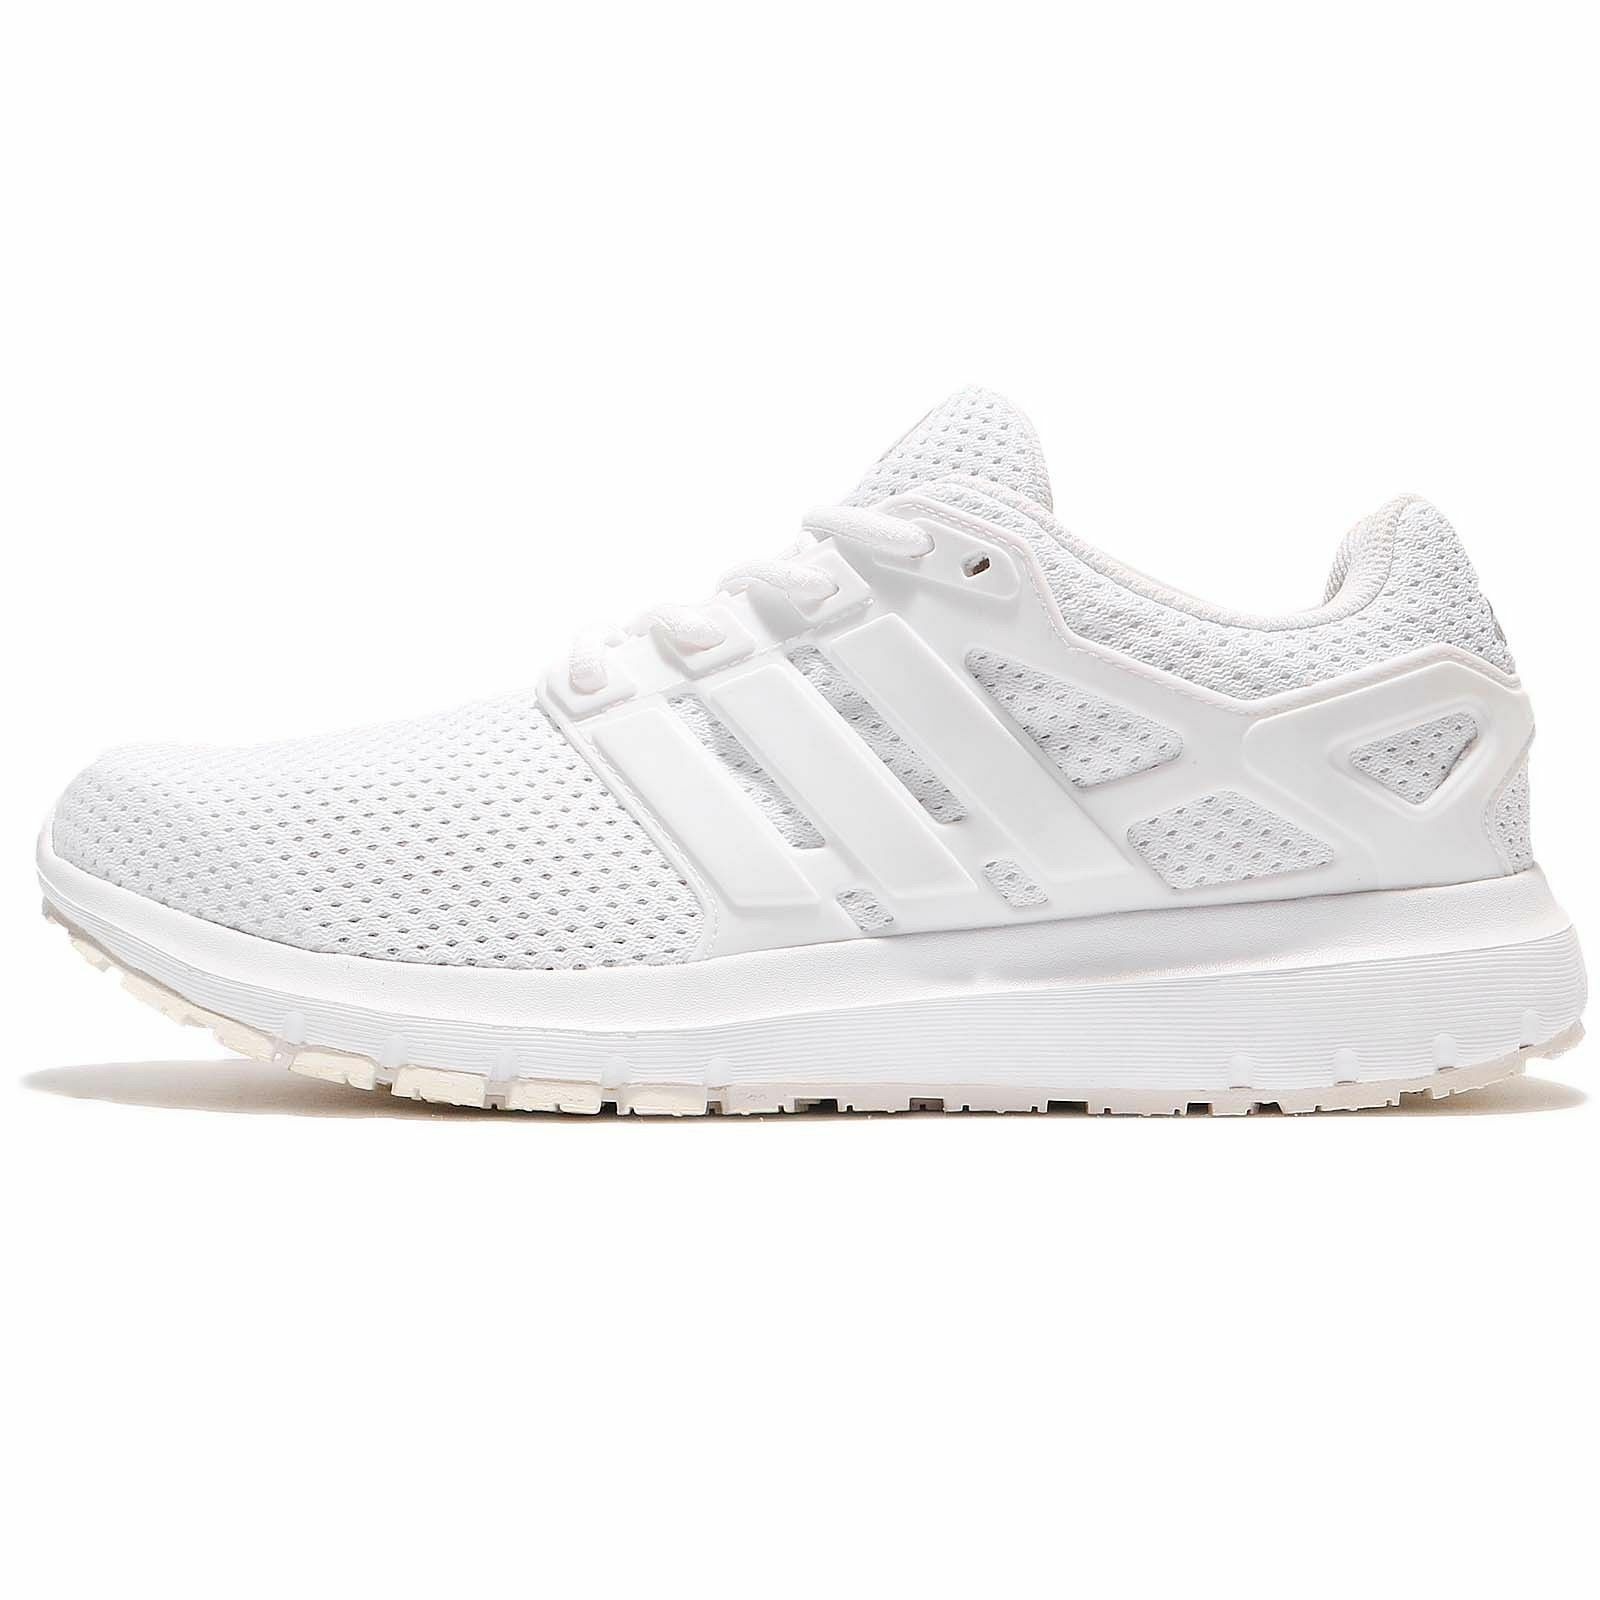 ADIDAS ENERGY CLOUD WTC RUNNING LOW SNEAKERS MEN SHOES WHITE BY2207 SIZE 9 NEW